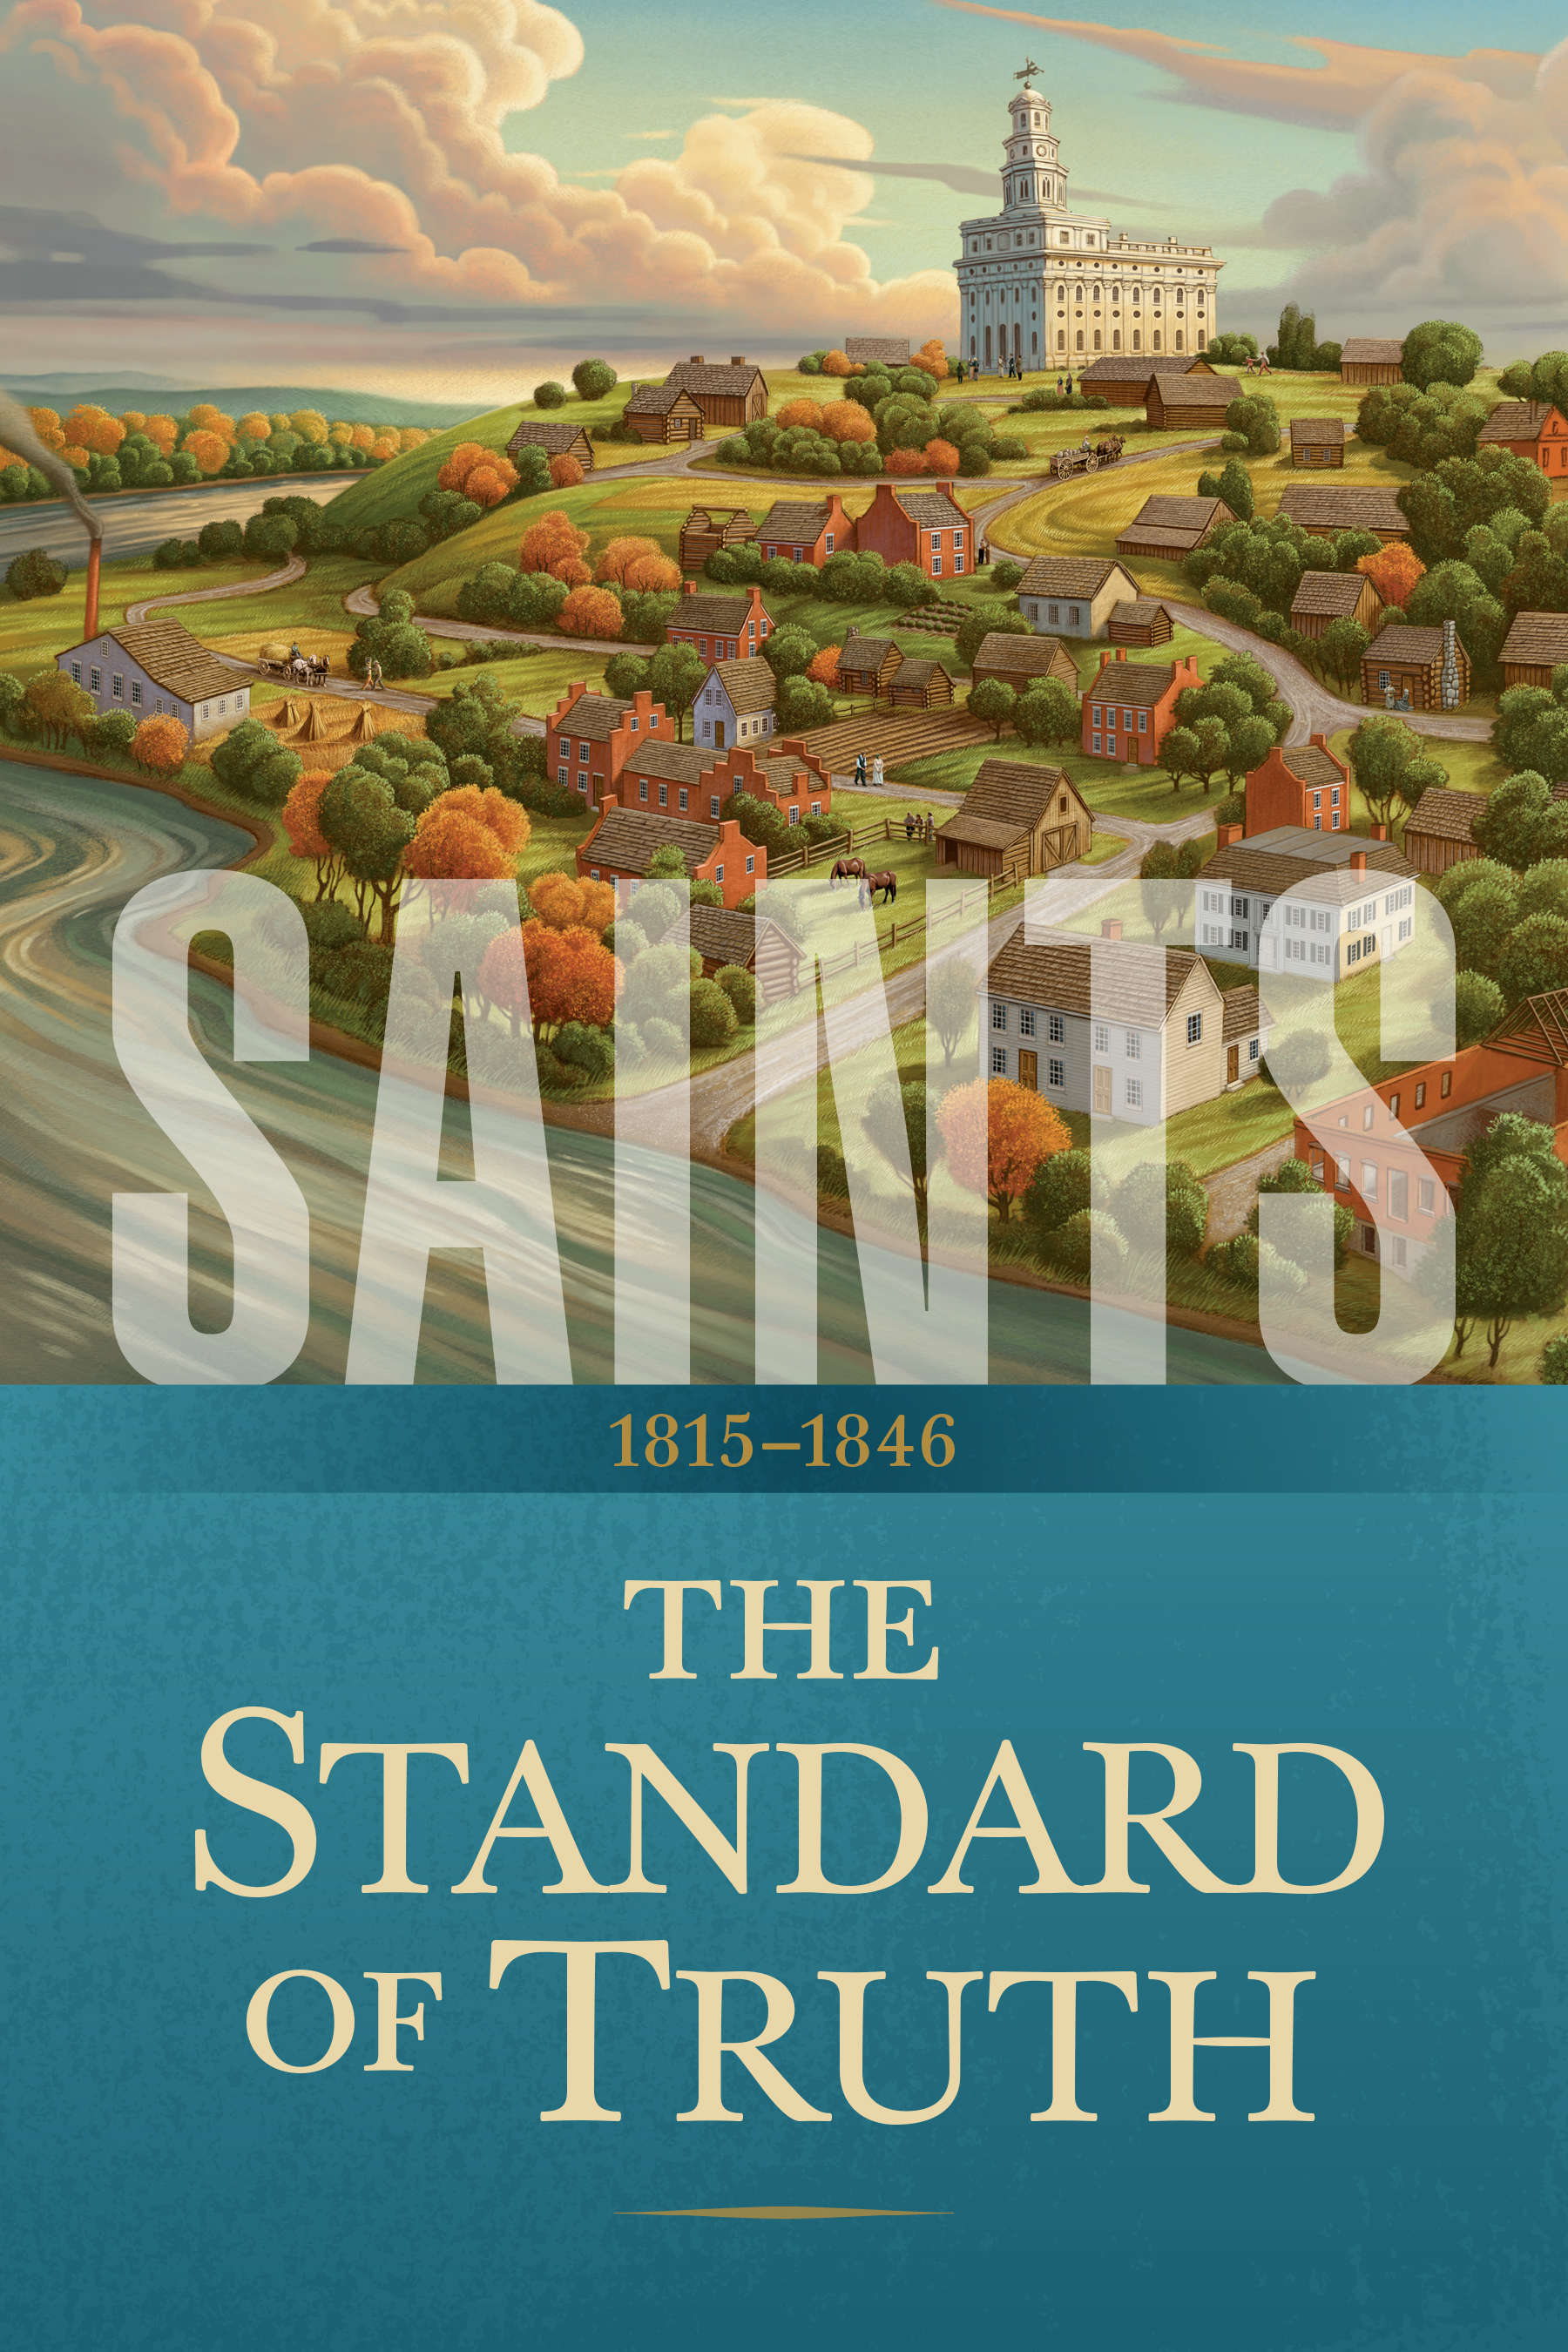 "The first volume of a new official history of The Church of Jesus Christ of Latter-day Saints went on sale Tuesday, Sept. 4, 2018. ""Saints: The Standard of Truth"" begins the first multi-volume official history of the church published since 1930."